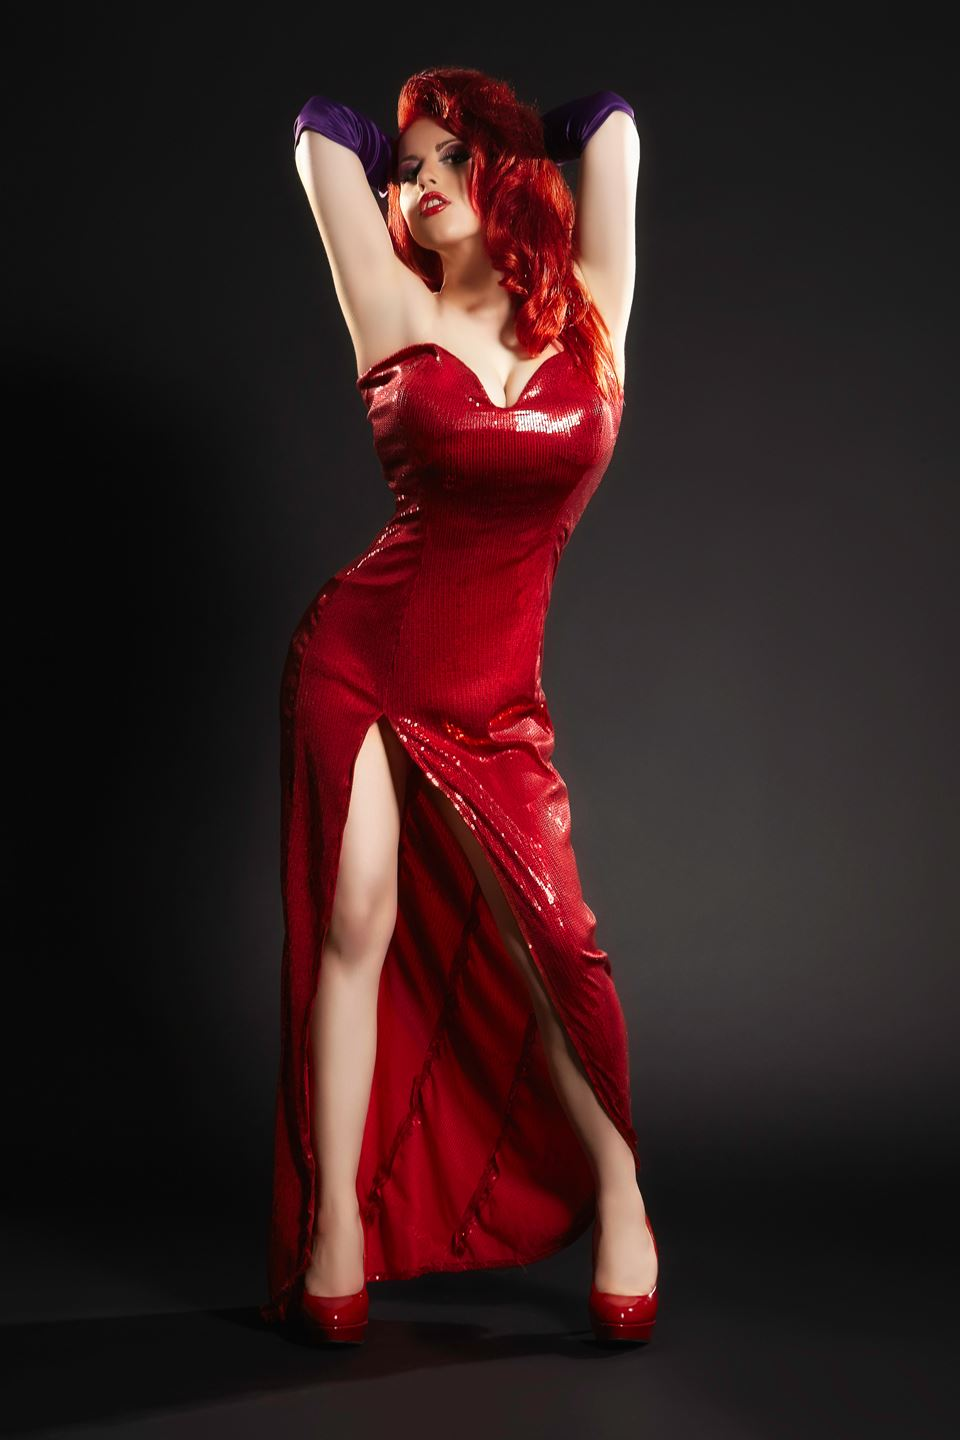 Jessica Rabbit - I am the first cosplayer model in ...